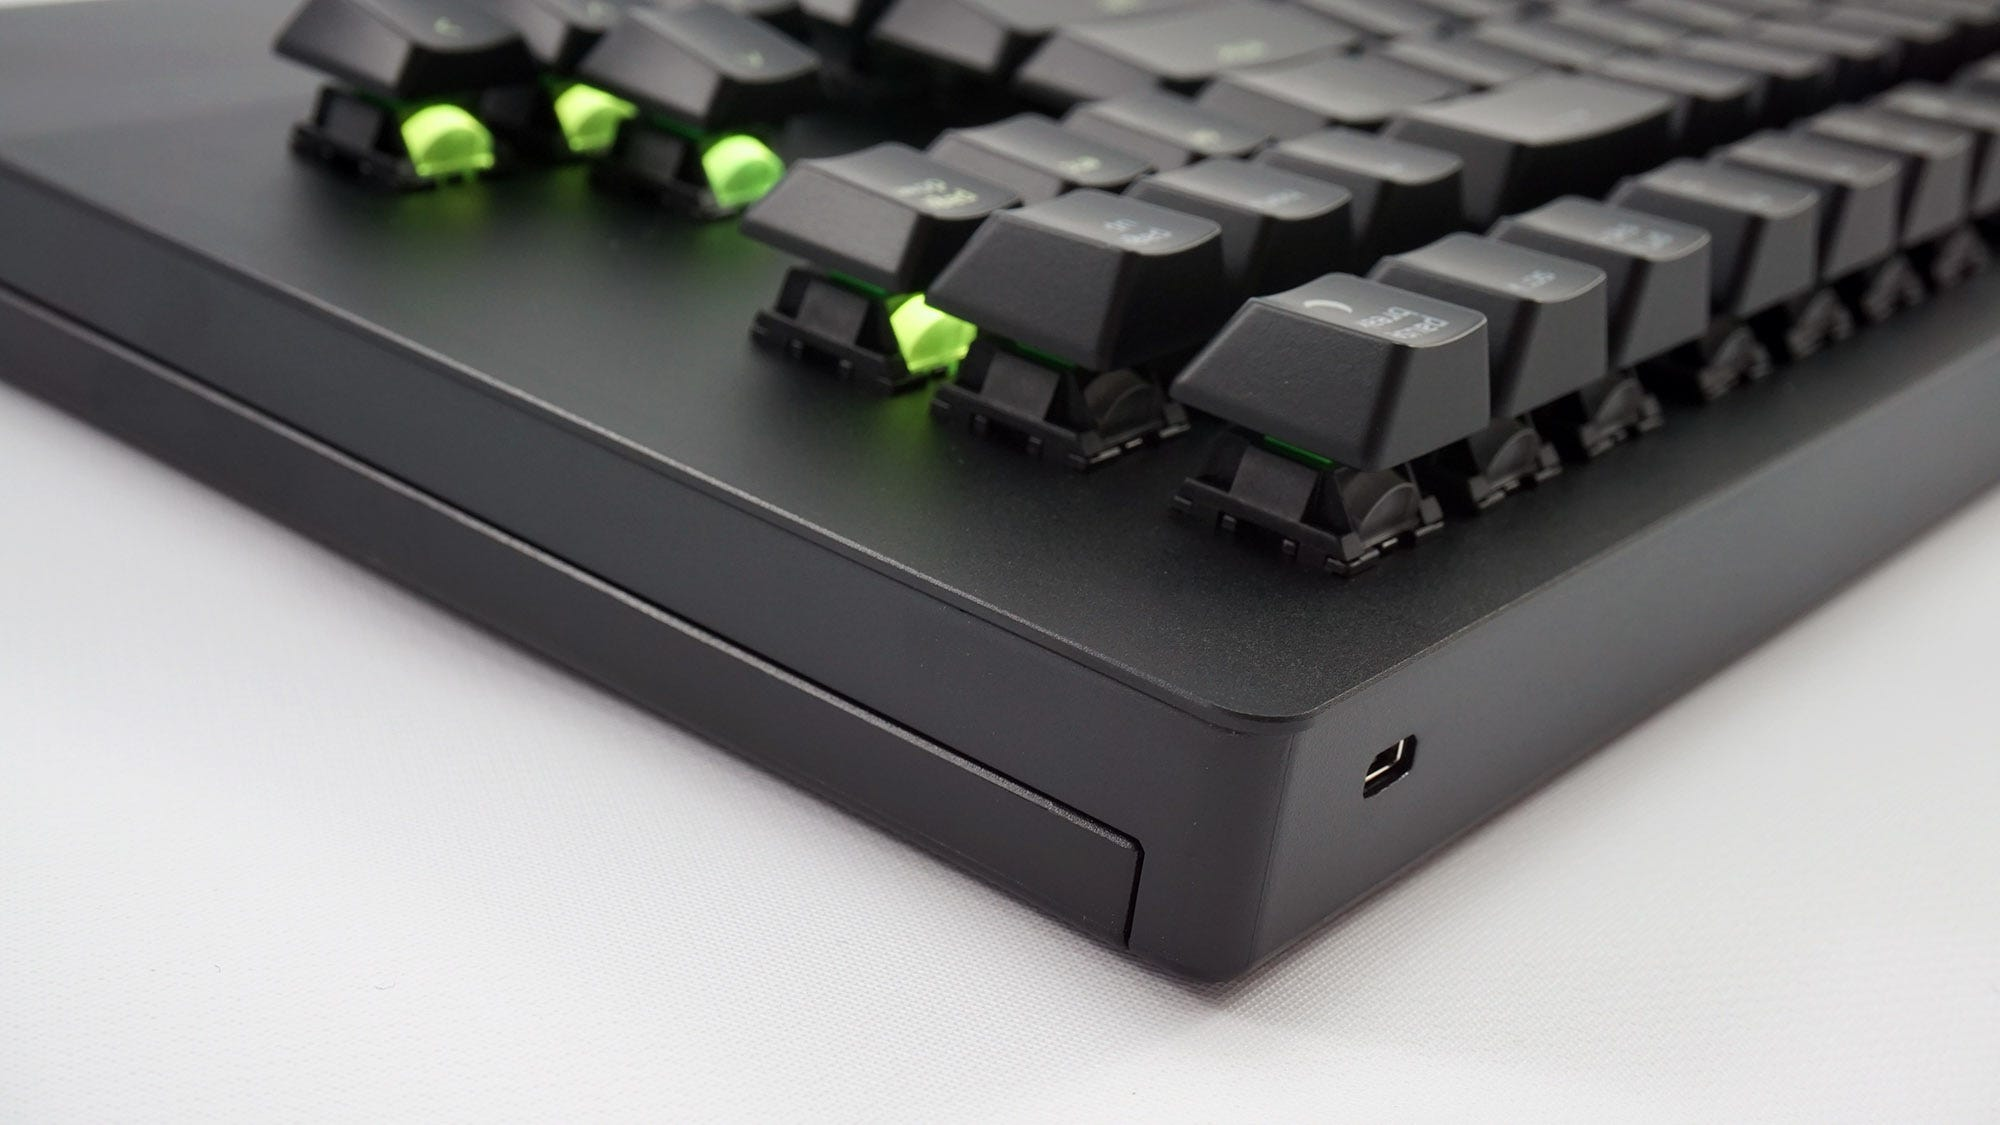 A close-up side view of the metal deck on the Turret keyboard